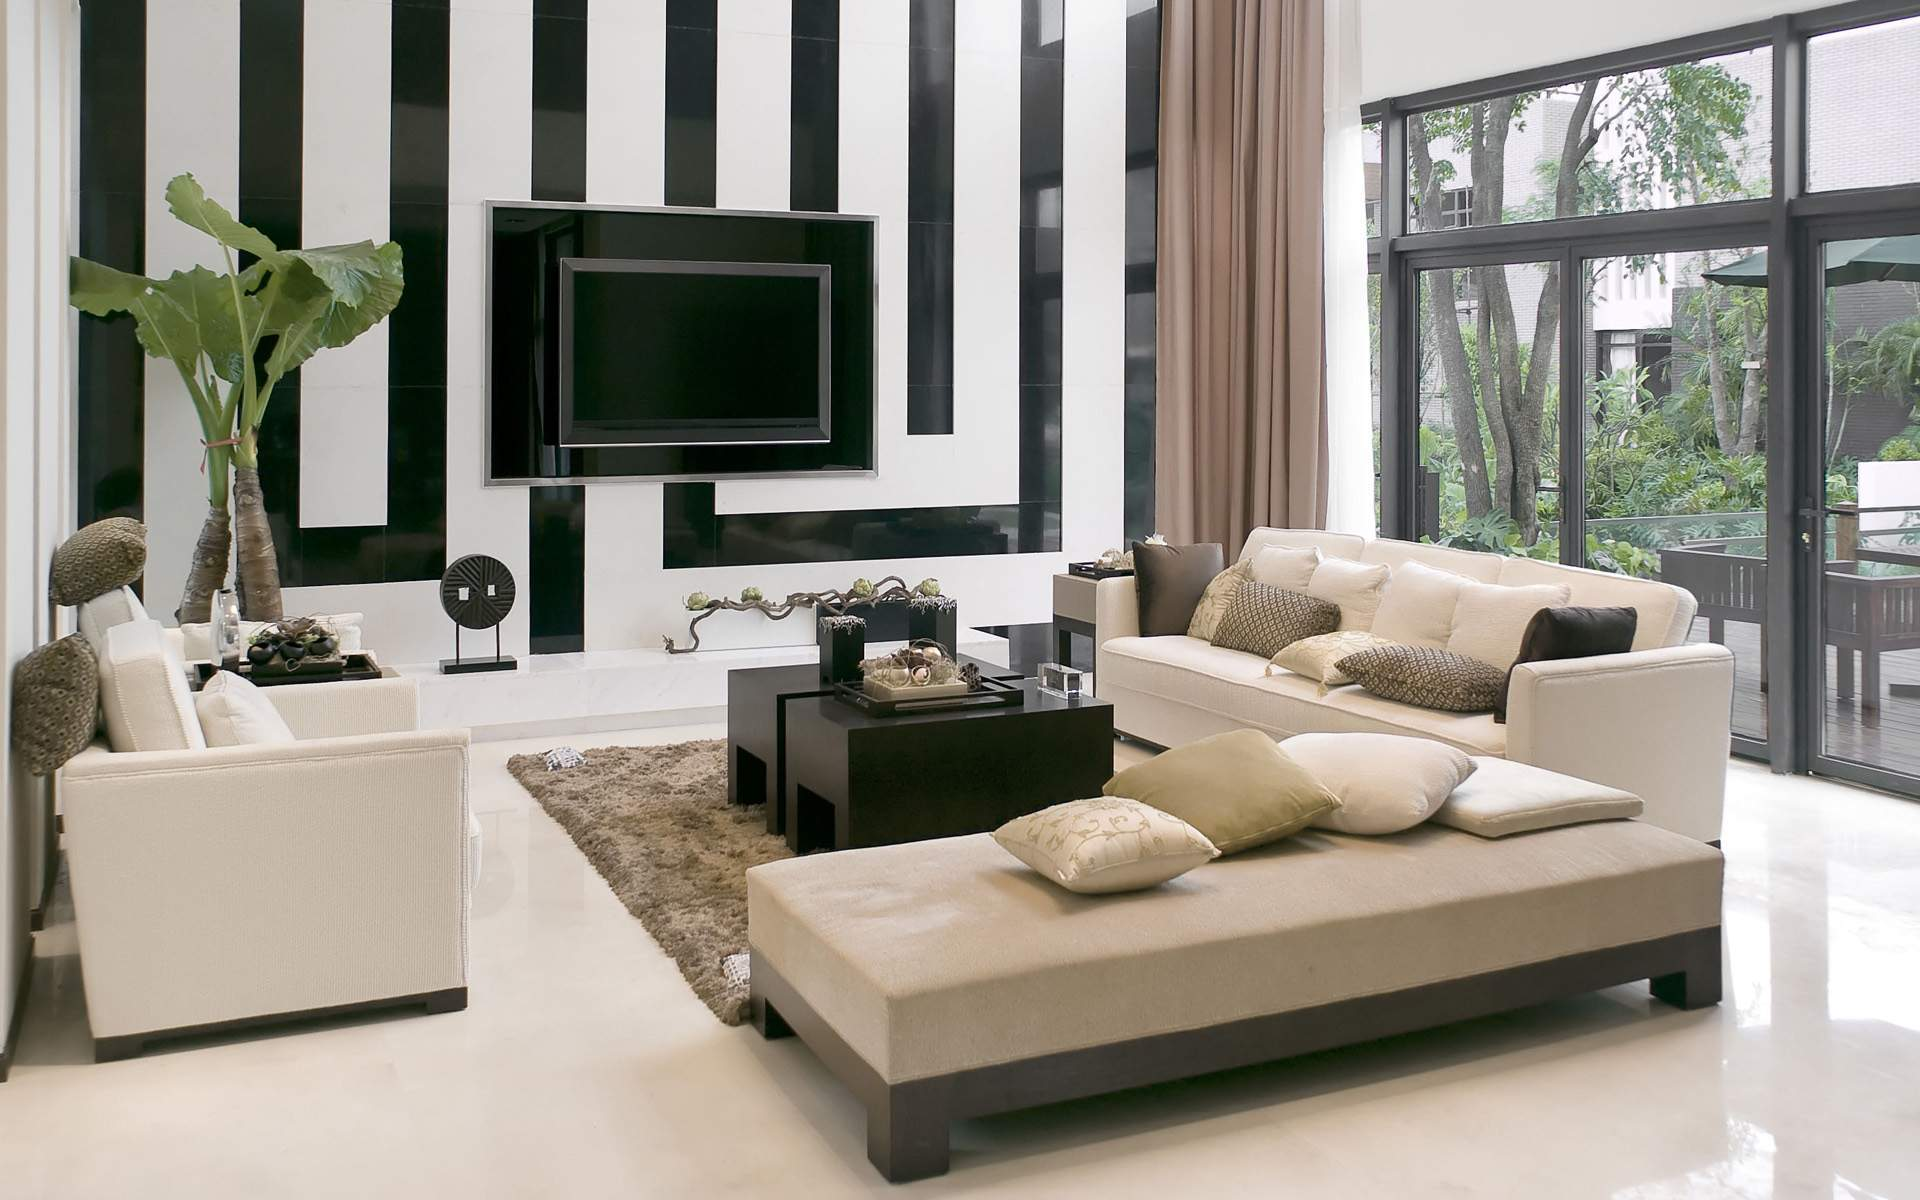 Modern Interior Design Living Room 10237 Hd Wallpapers in Architecture 1920x1200